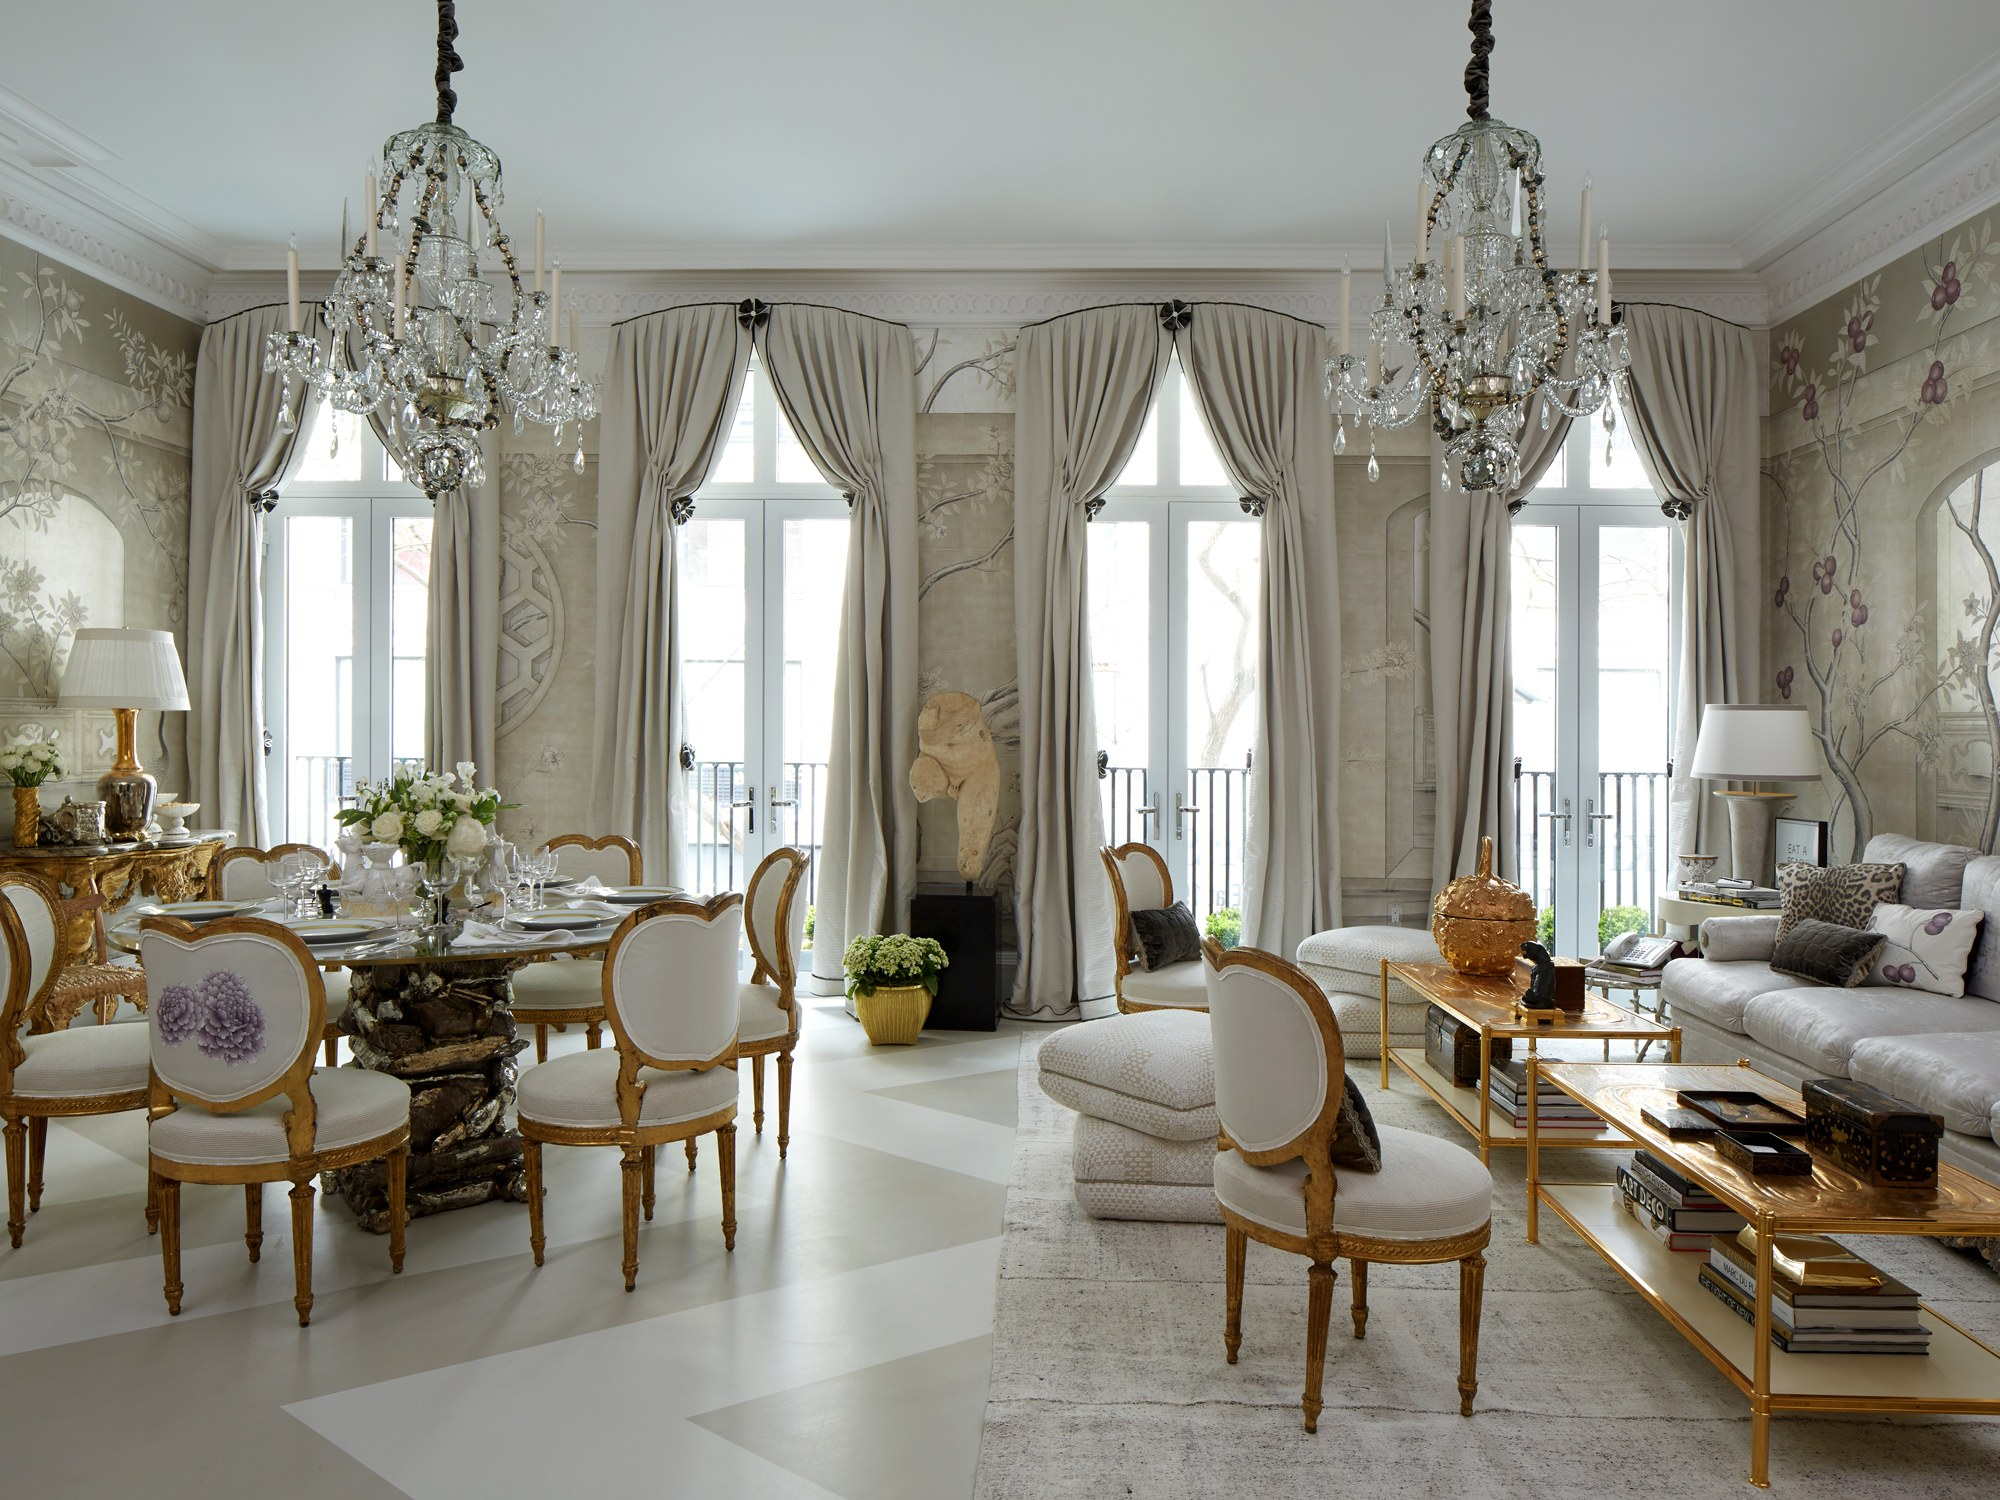 8 design tips to steal from this insanely expensive house | huffpost